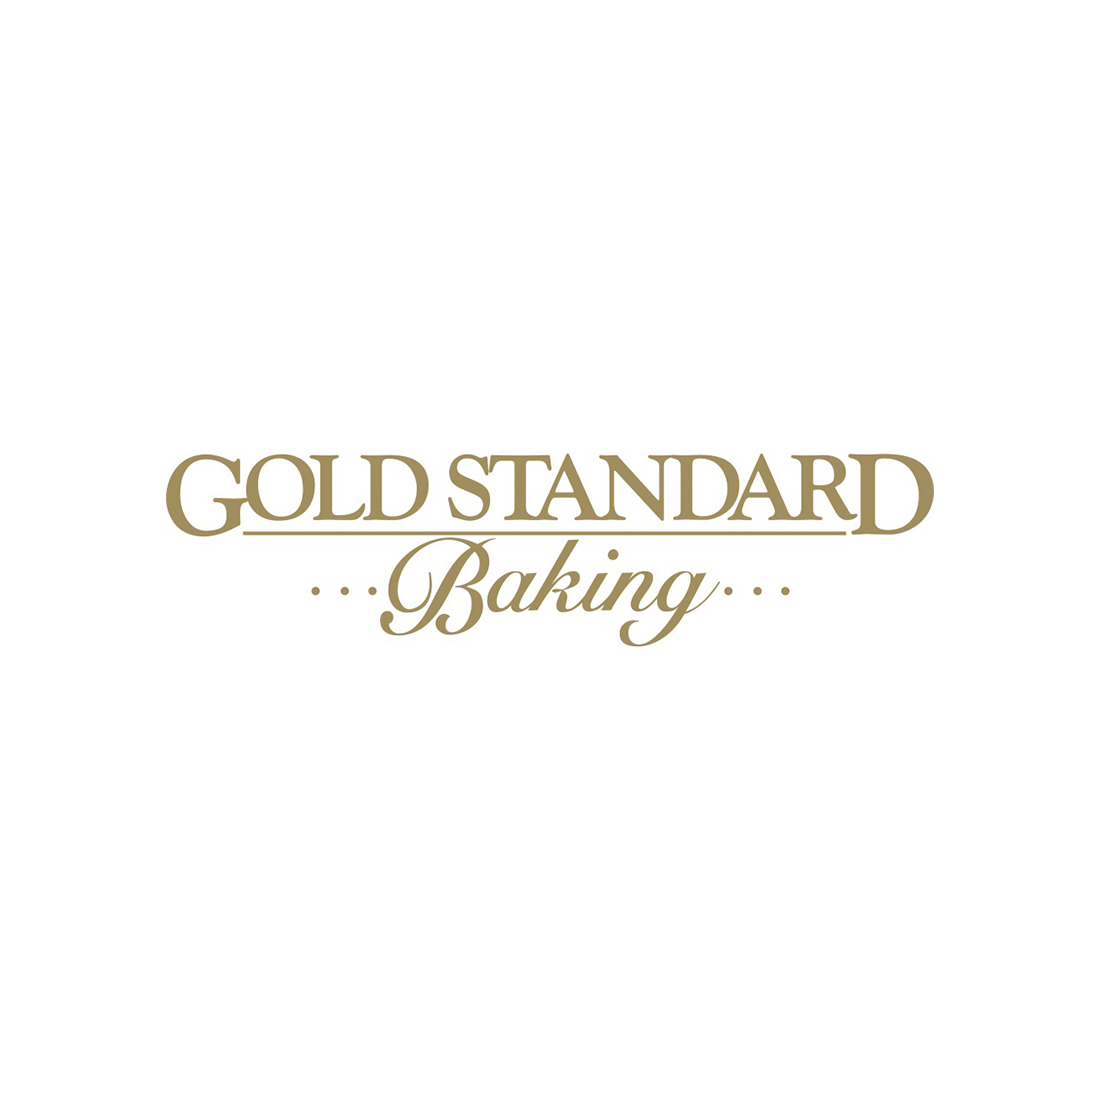 Gold Standard Banking